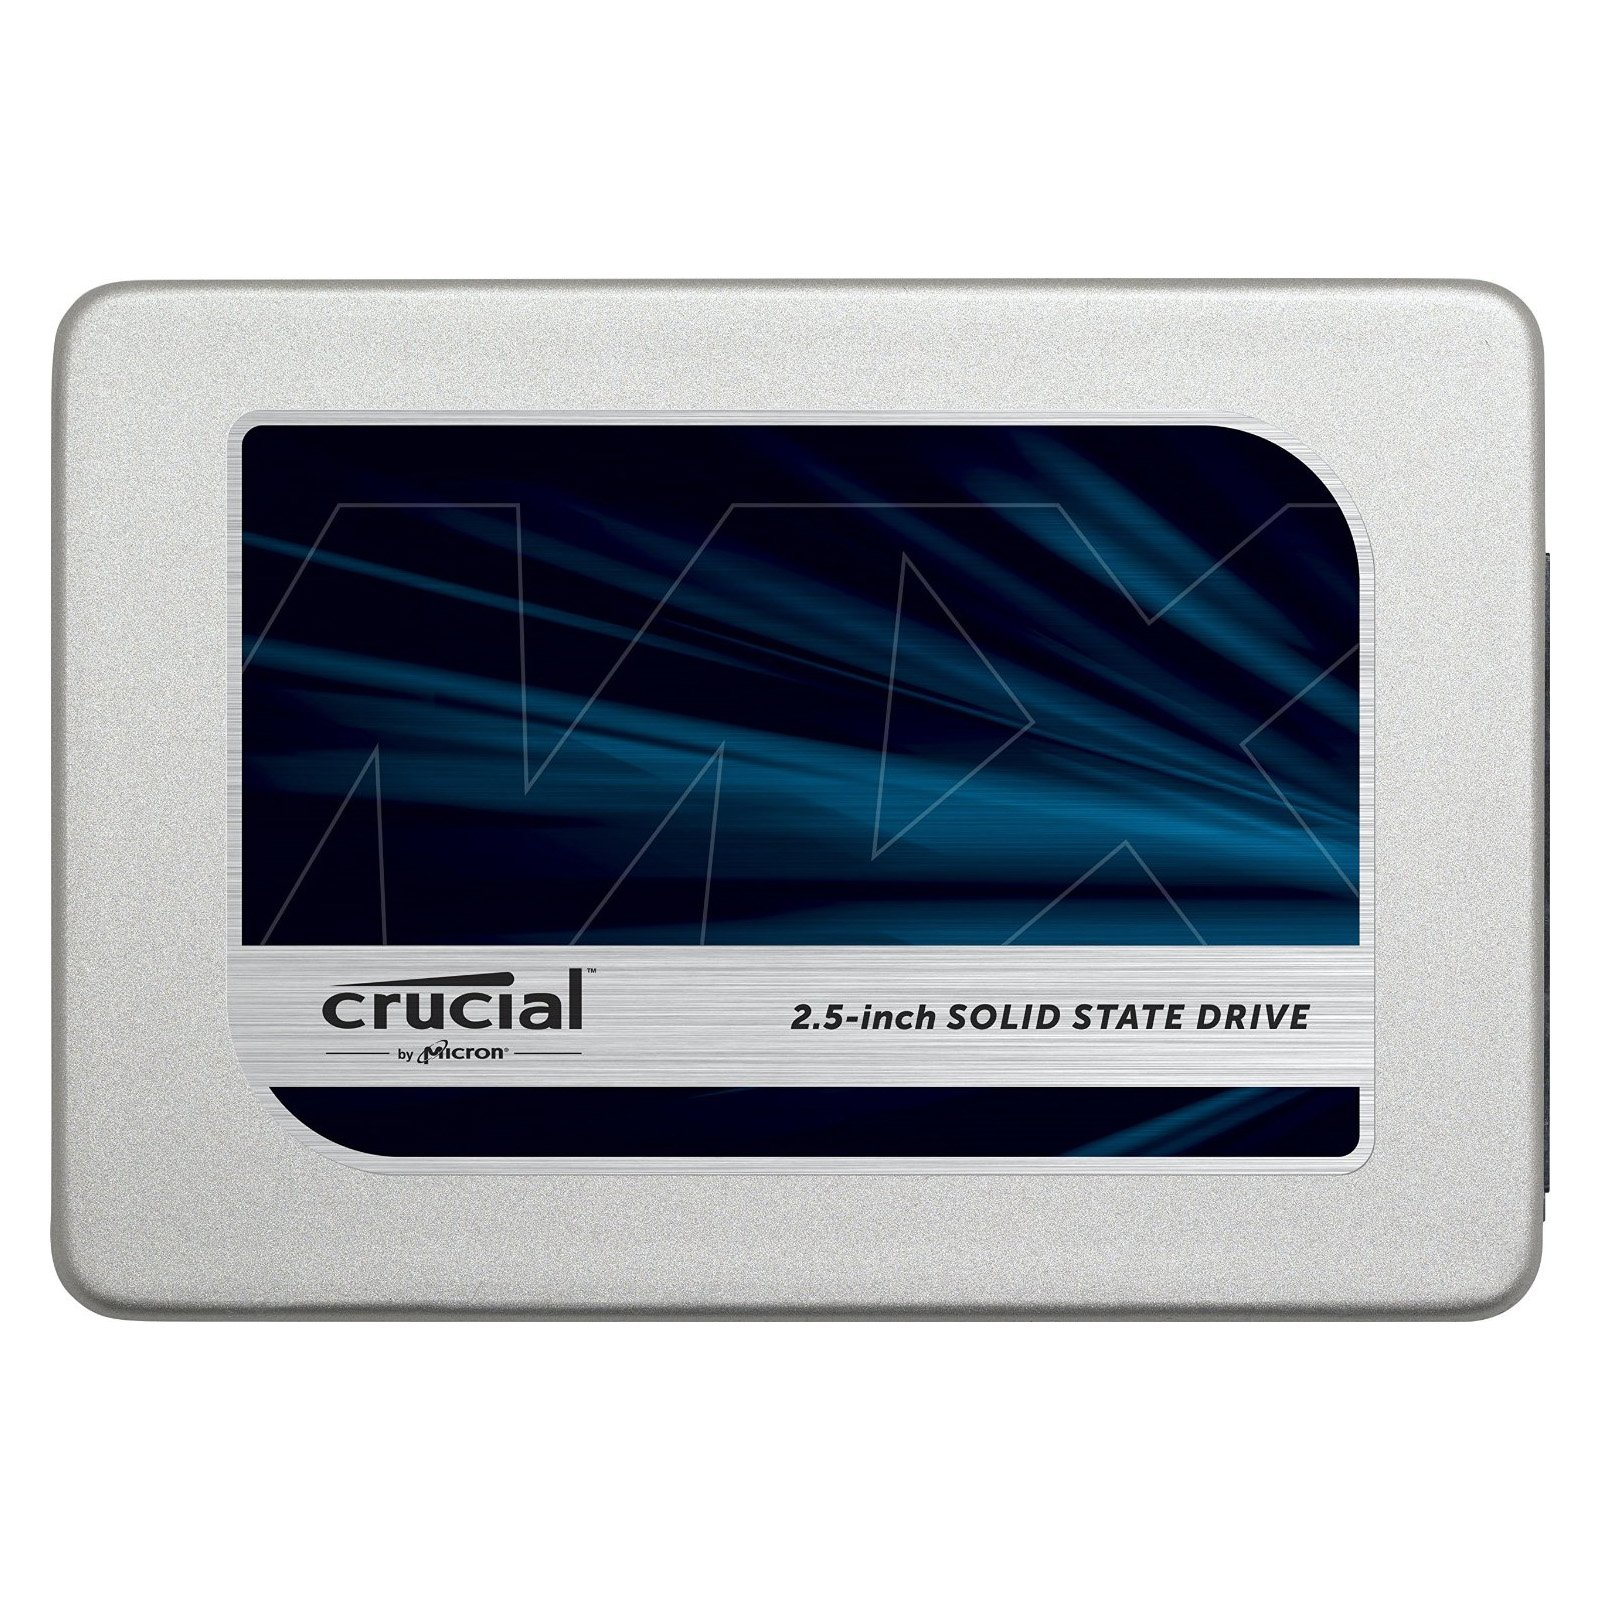 Crucial MX300 525GB SATA 2.5 Inch Internal Solid State Drive - CT525MX300SSD1 by Crucial